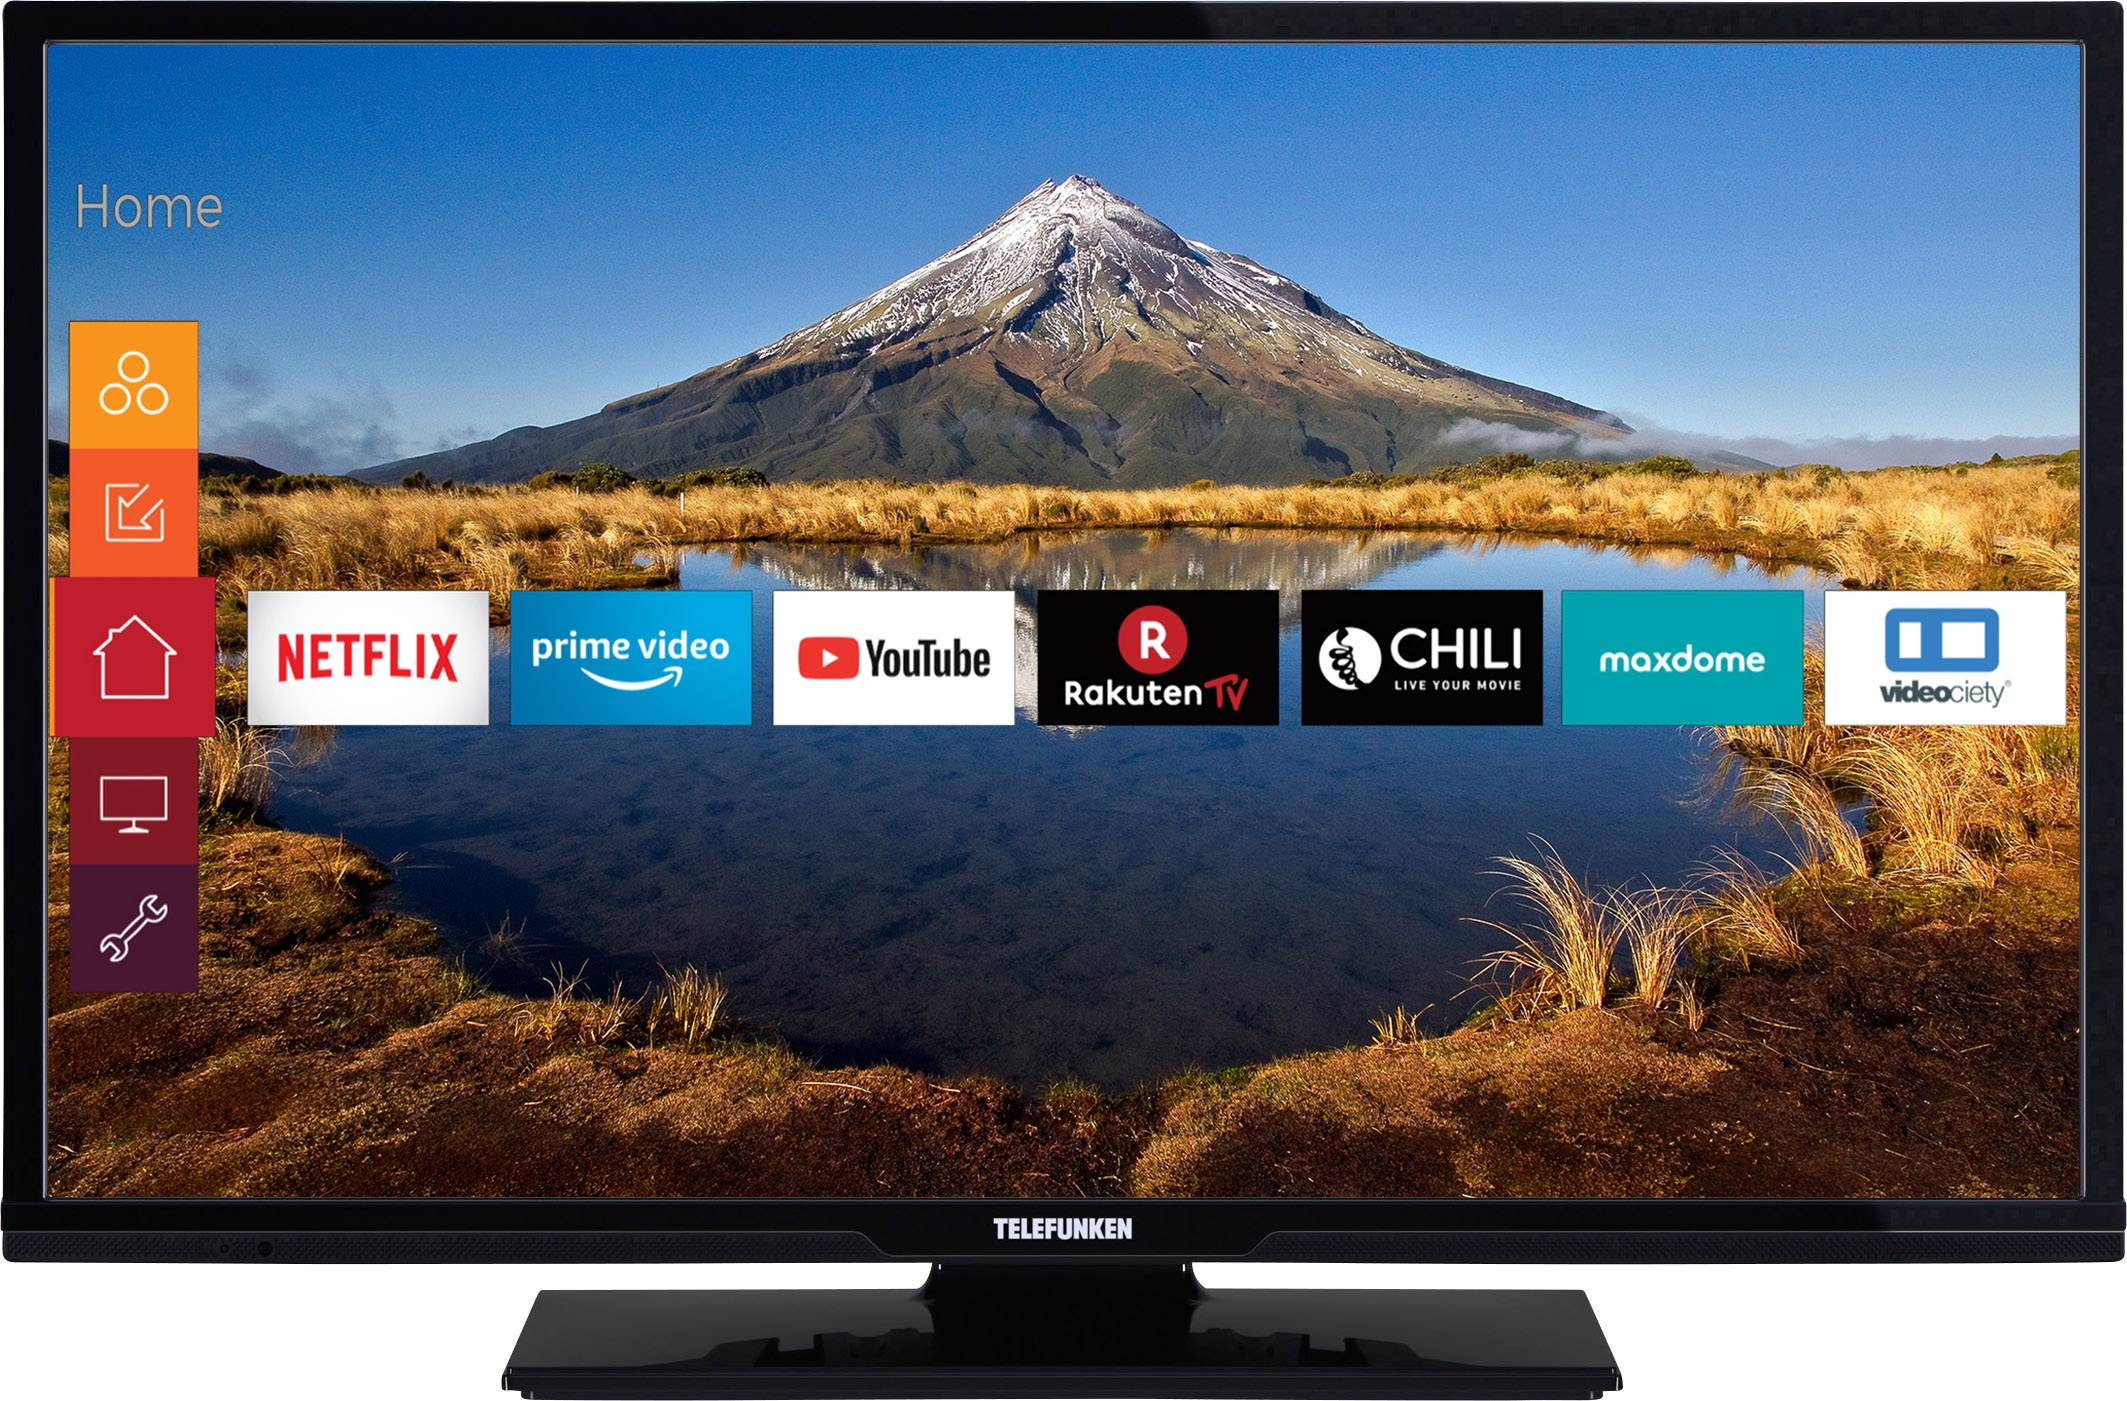 Telefunken Test Telefunken C32f545a Led Tv 81 Cm 32